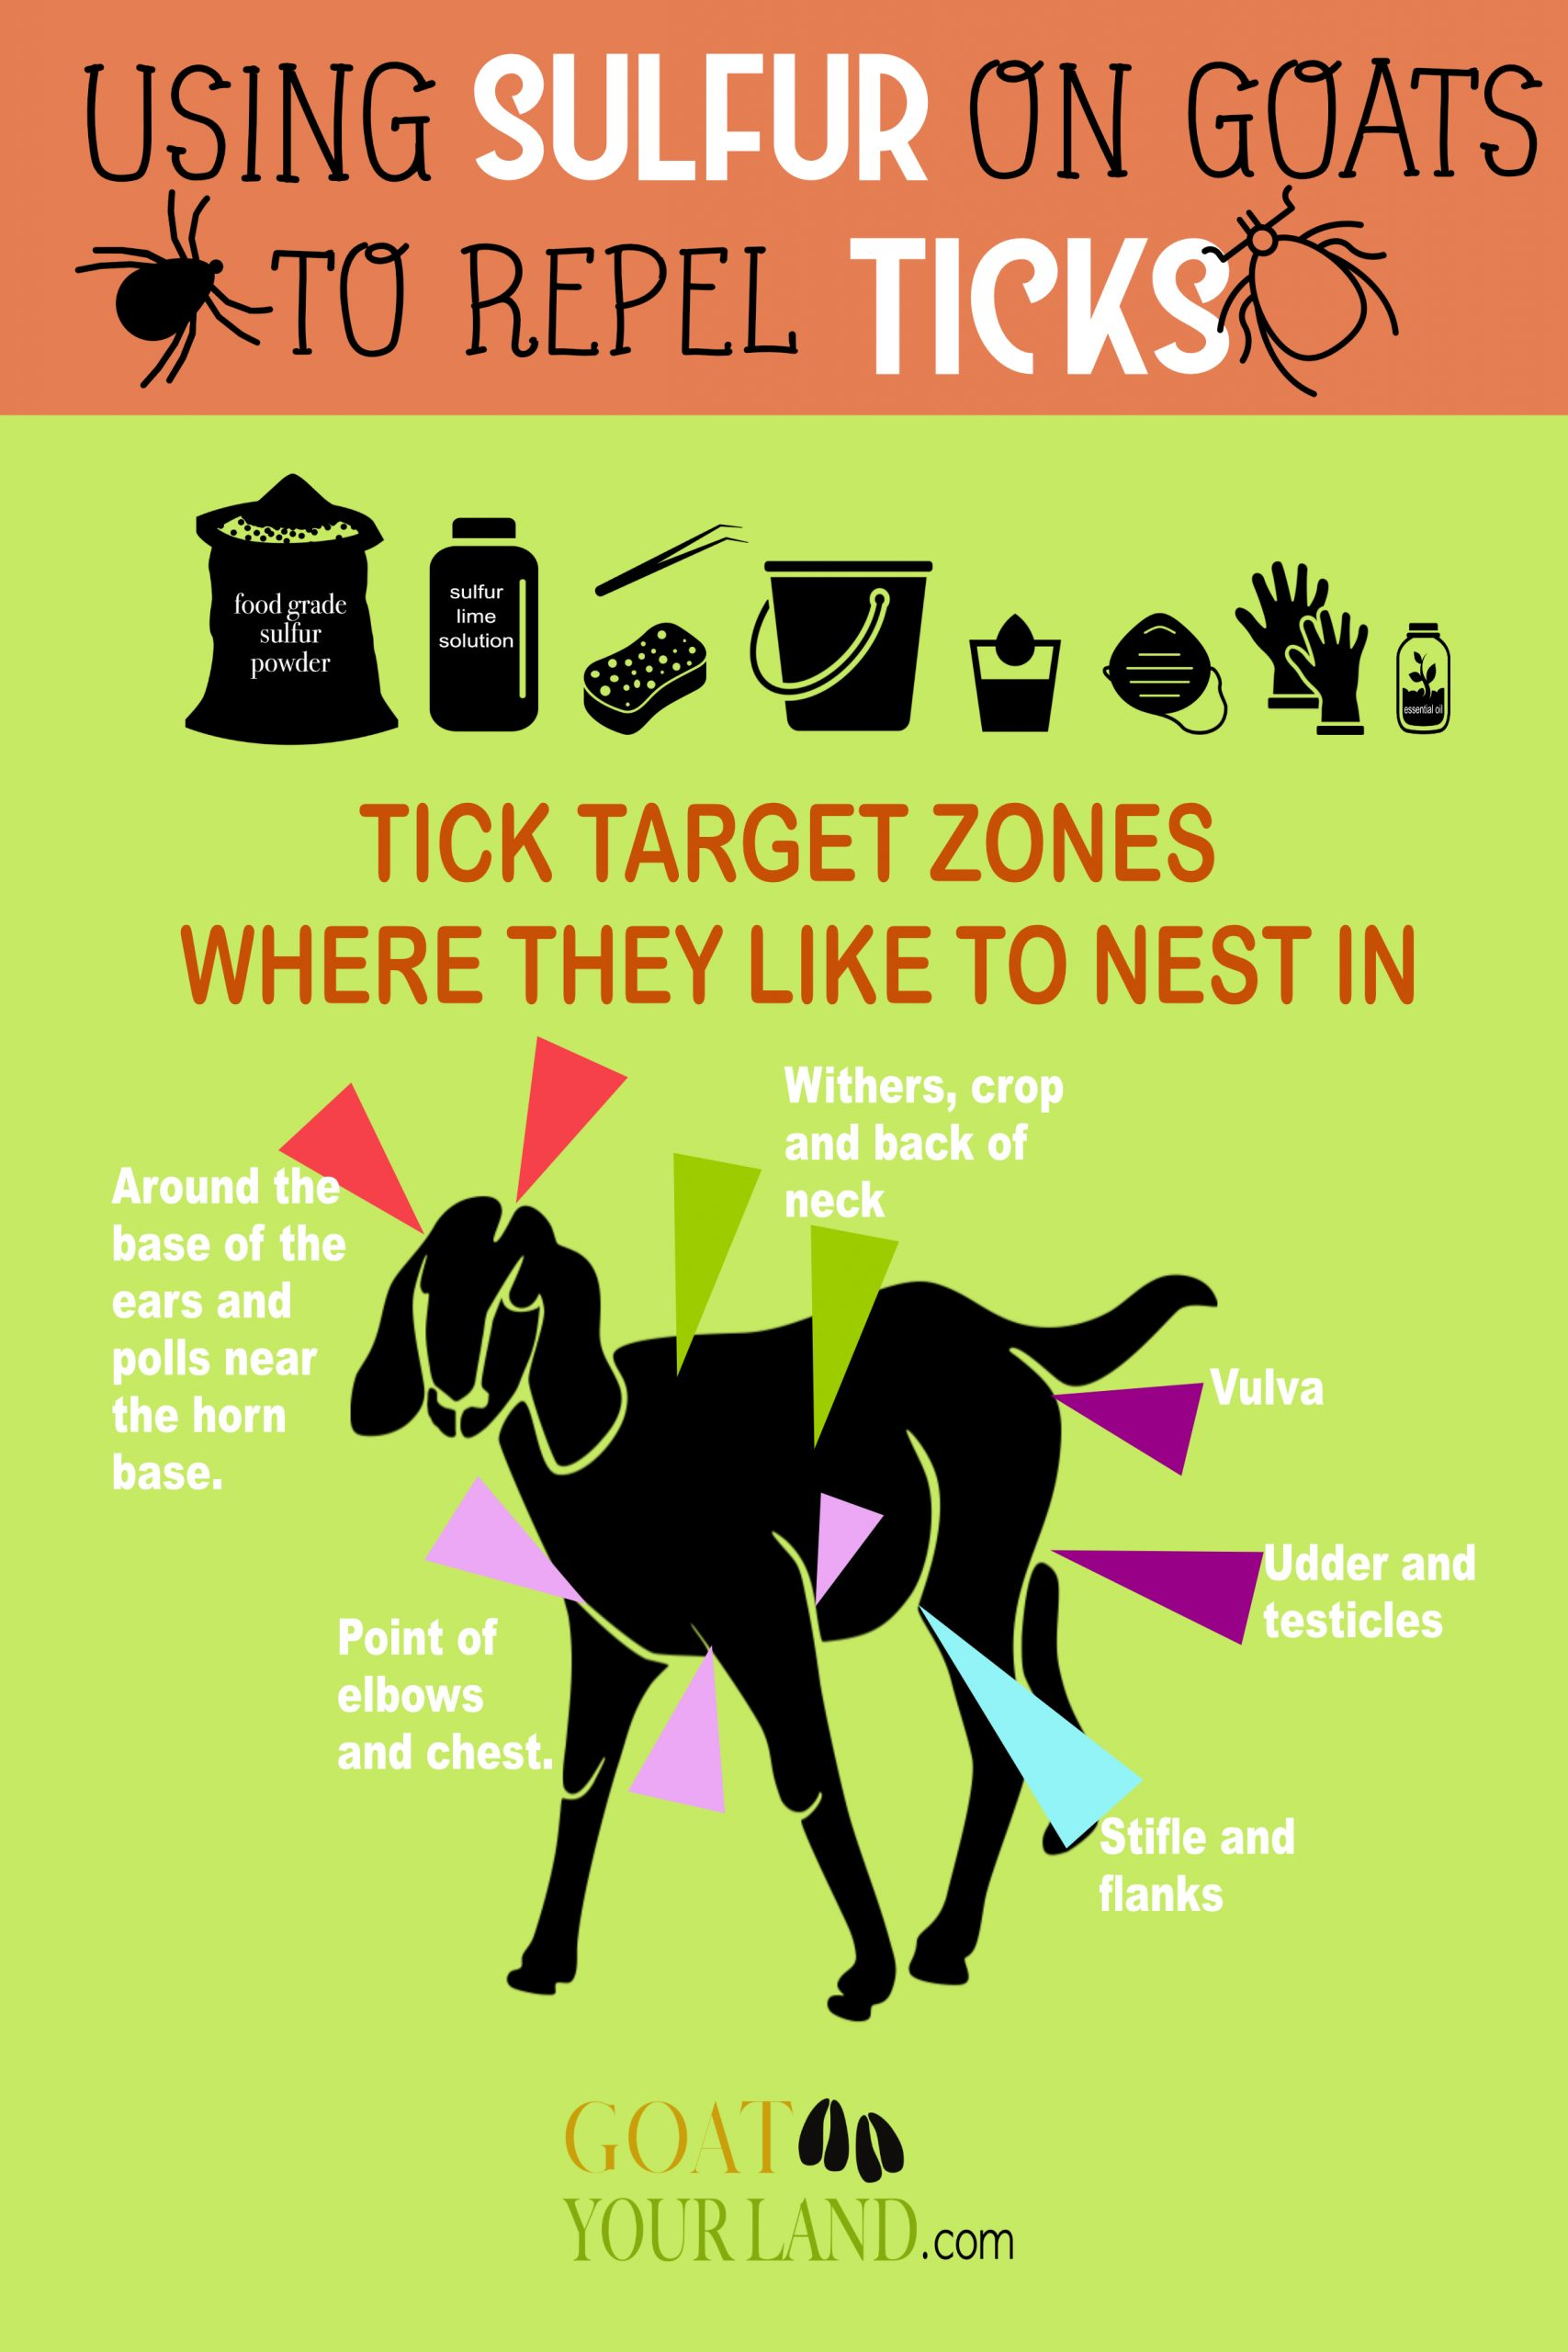 where ticks nest on goats